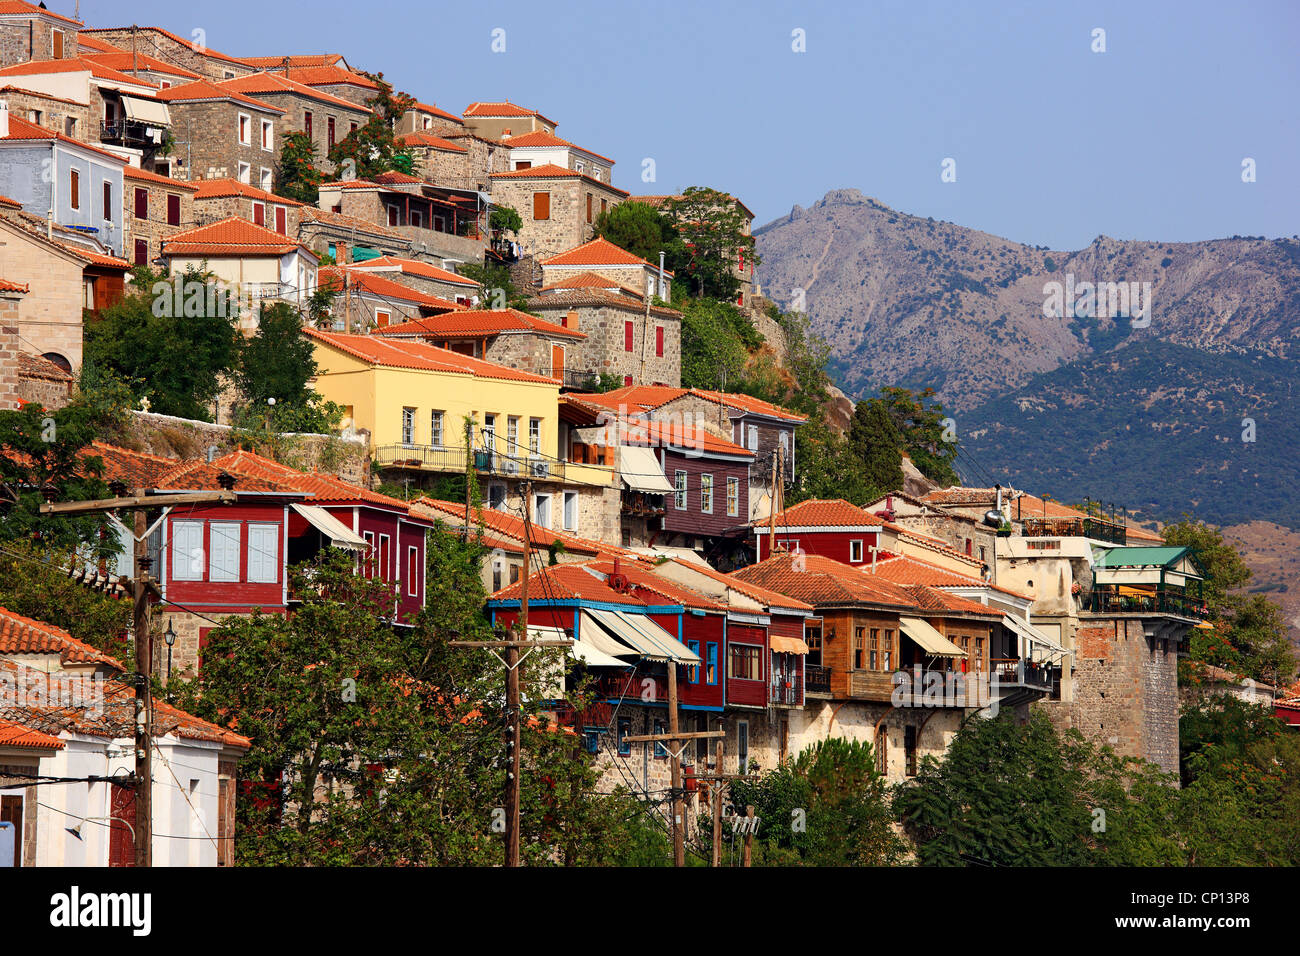 Partial view of beautiful Molyvos town Lesvos island, Northern Aegean, Greece. - Stock Image